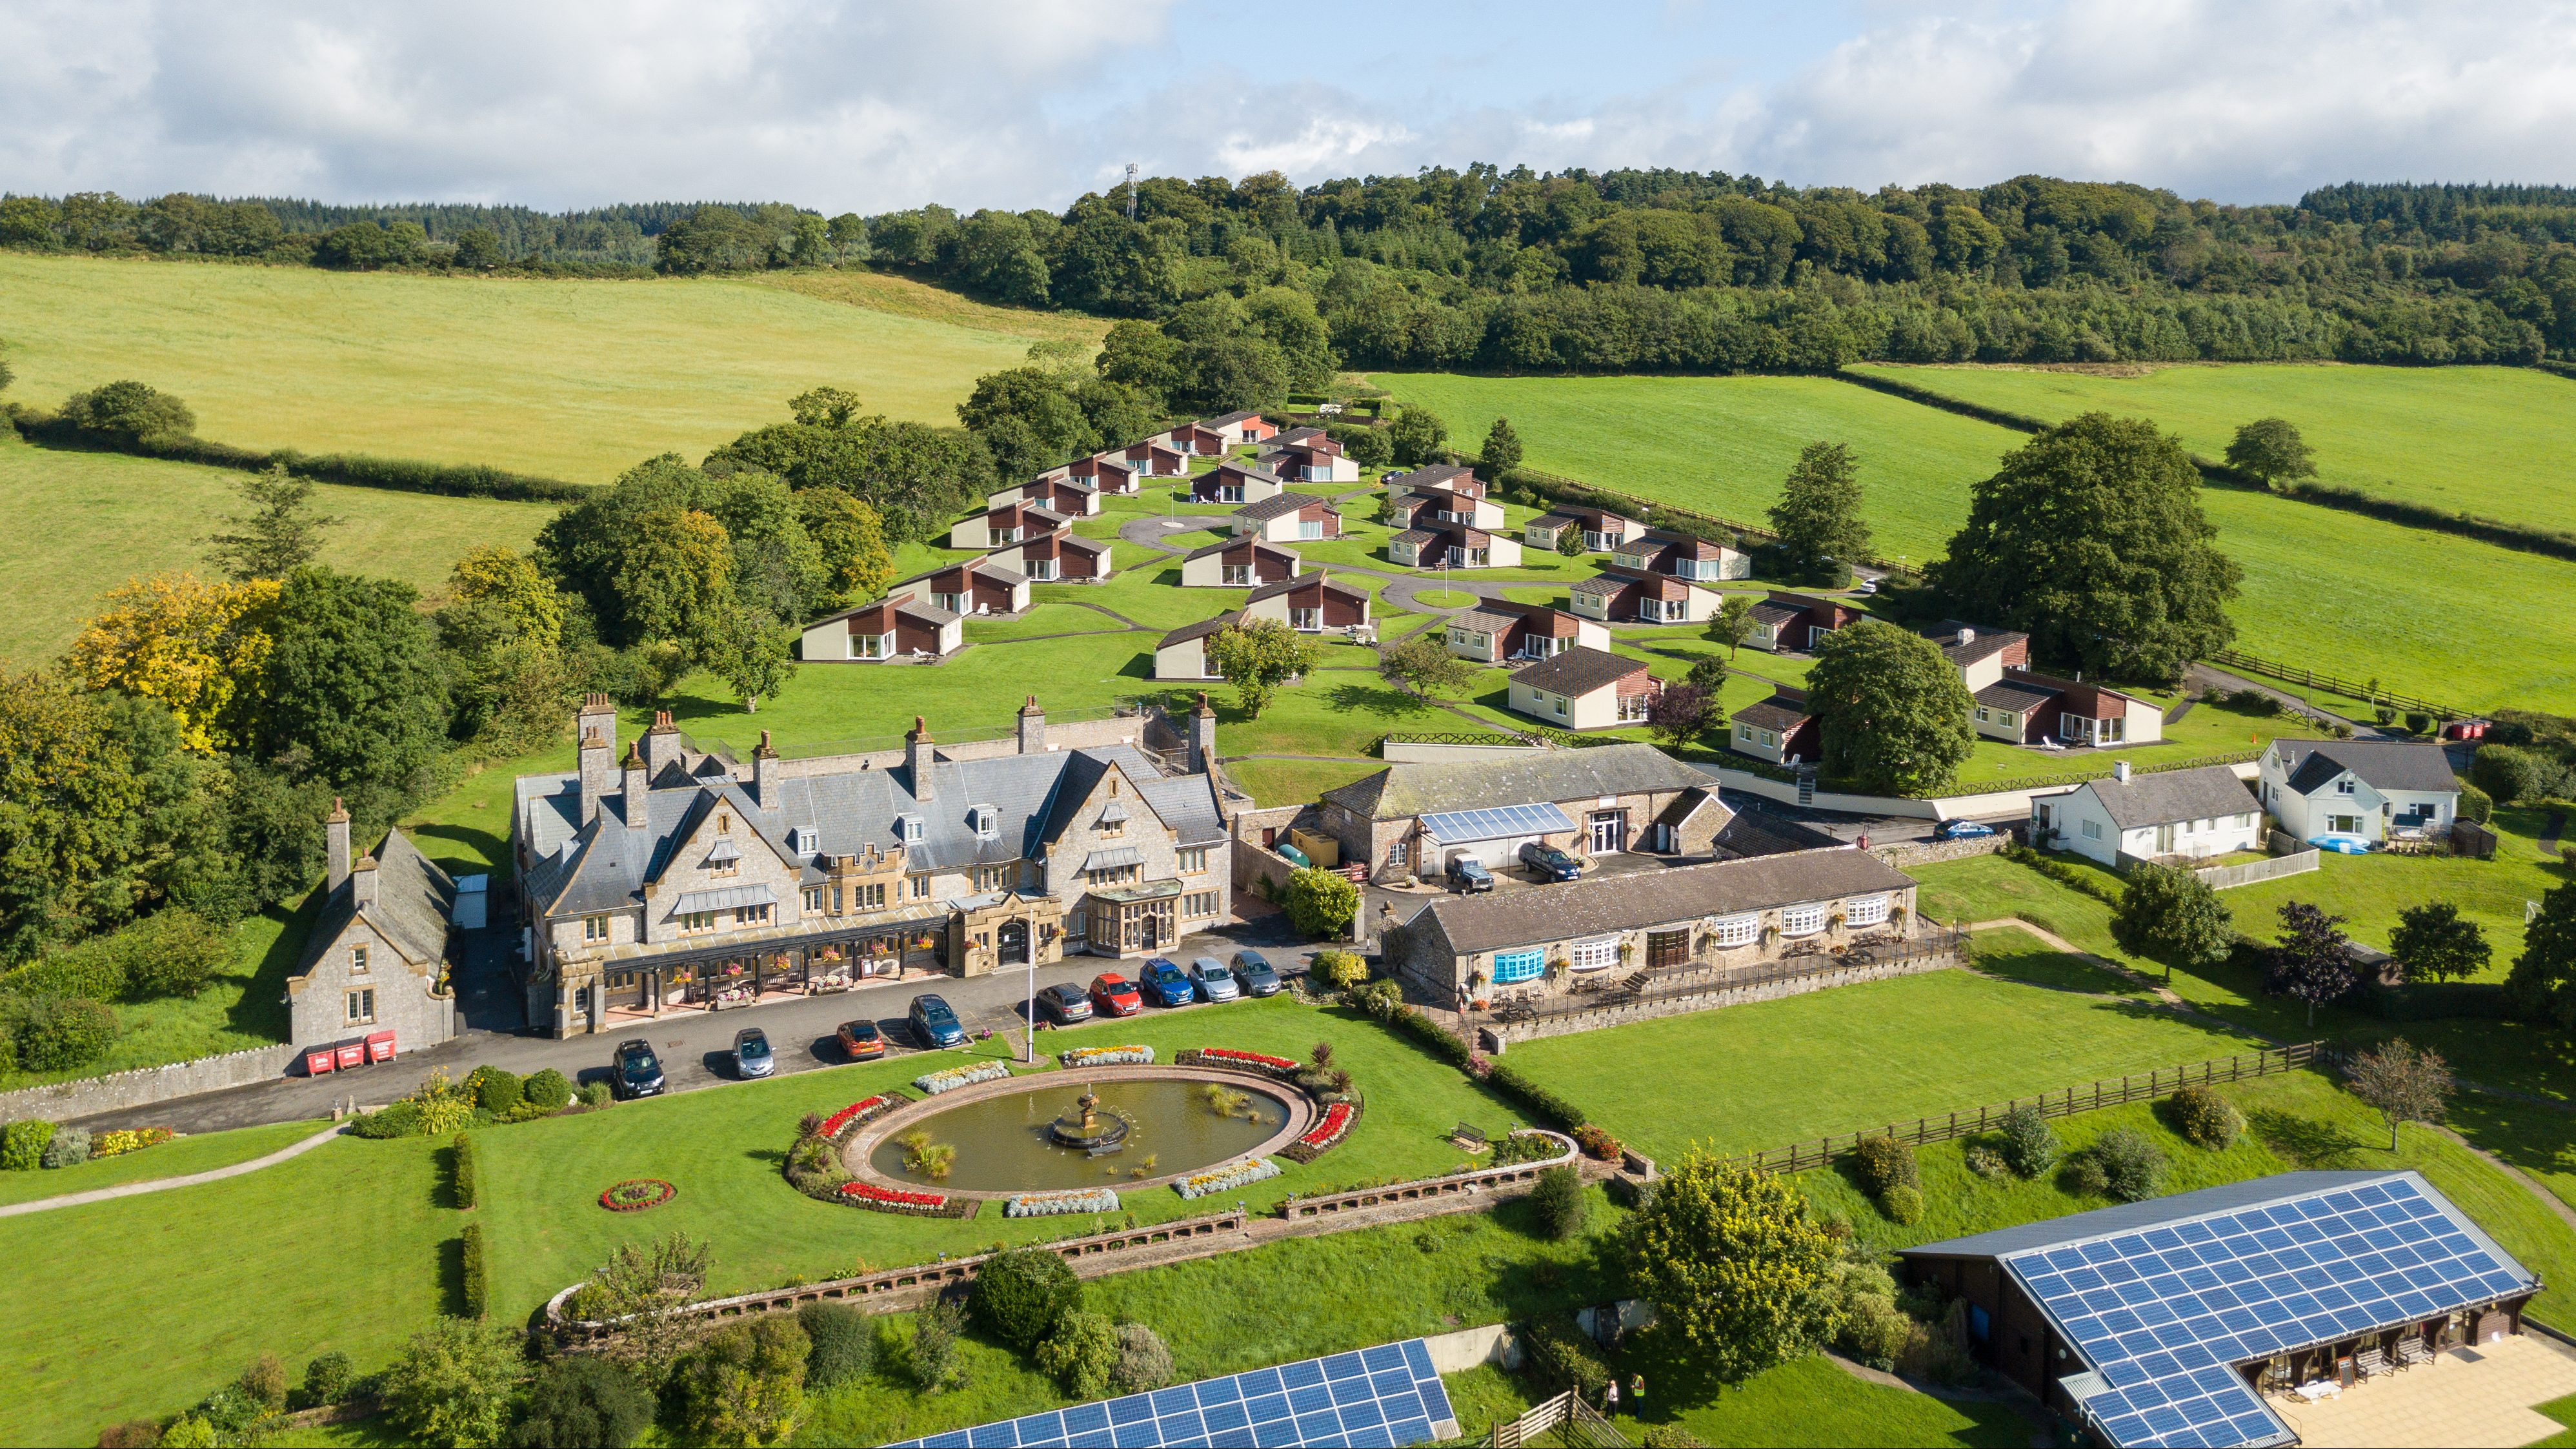 Harcombe House aerial